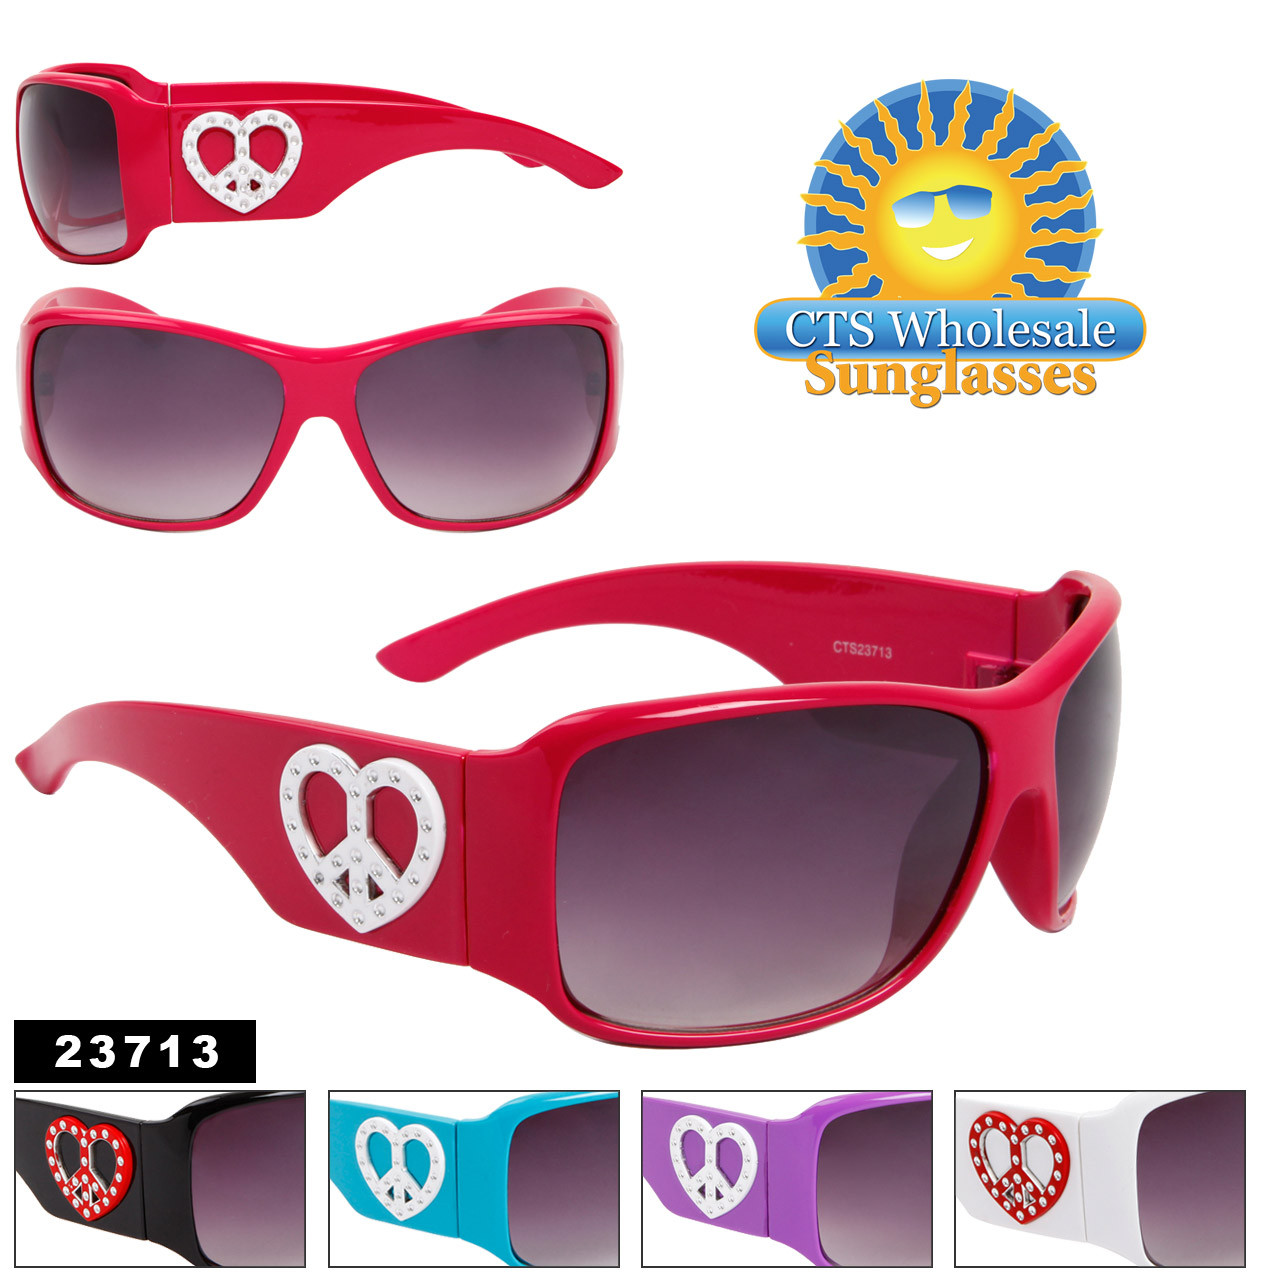 Cute Fashion Sunglasses w/Heart Shaped Peace Signs 23713